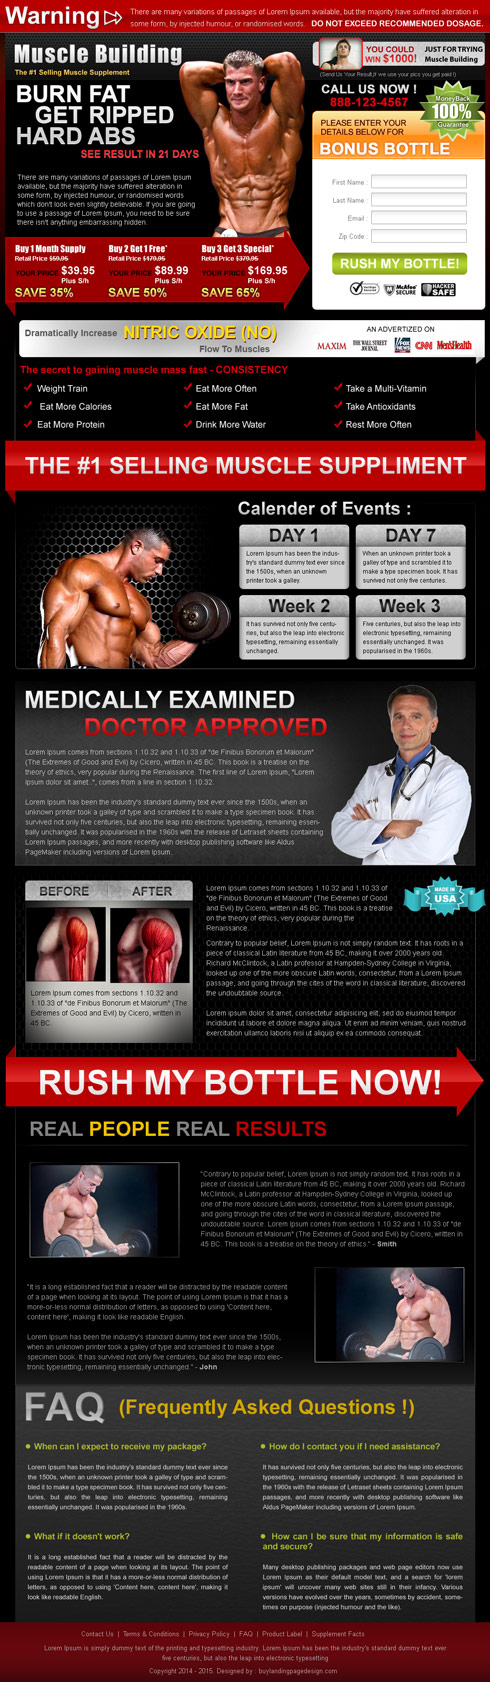 bodybuilding-product-selling-lead-capture-landing-page-design-templates-013